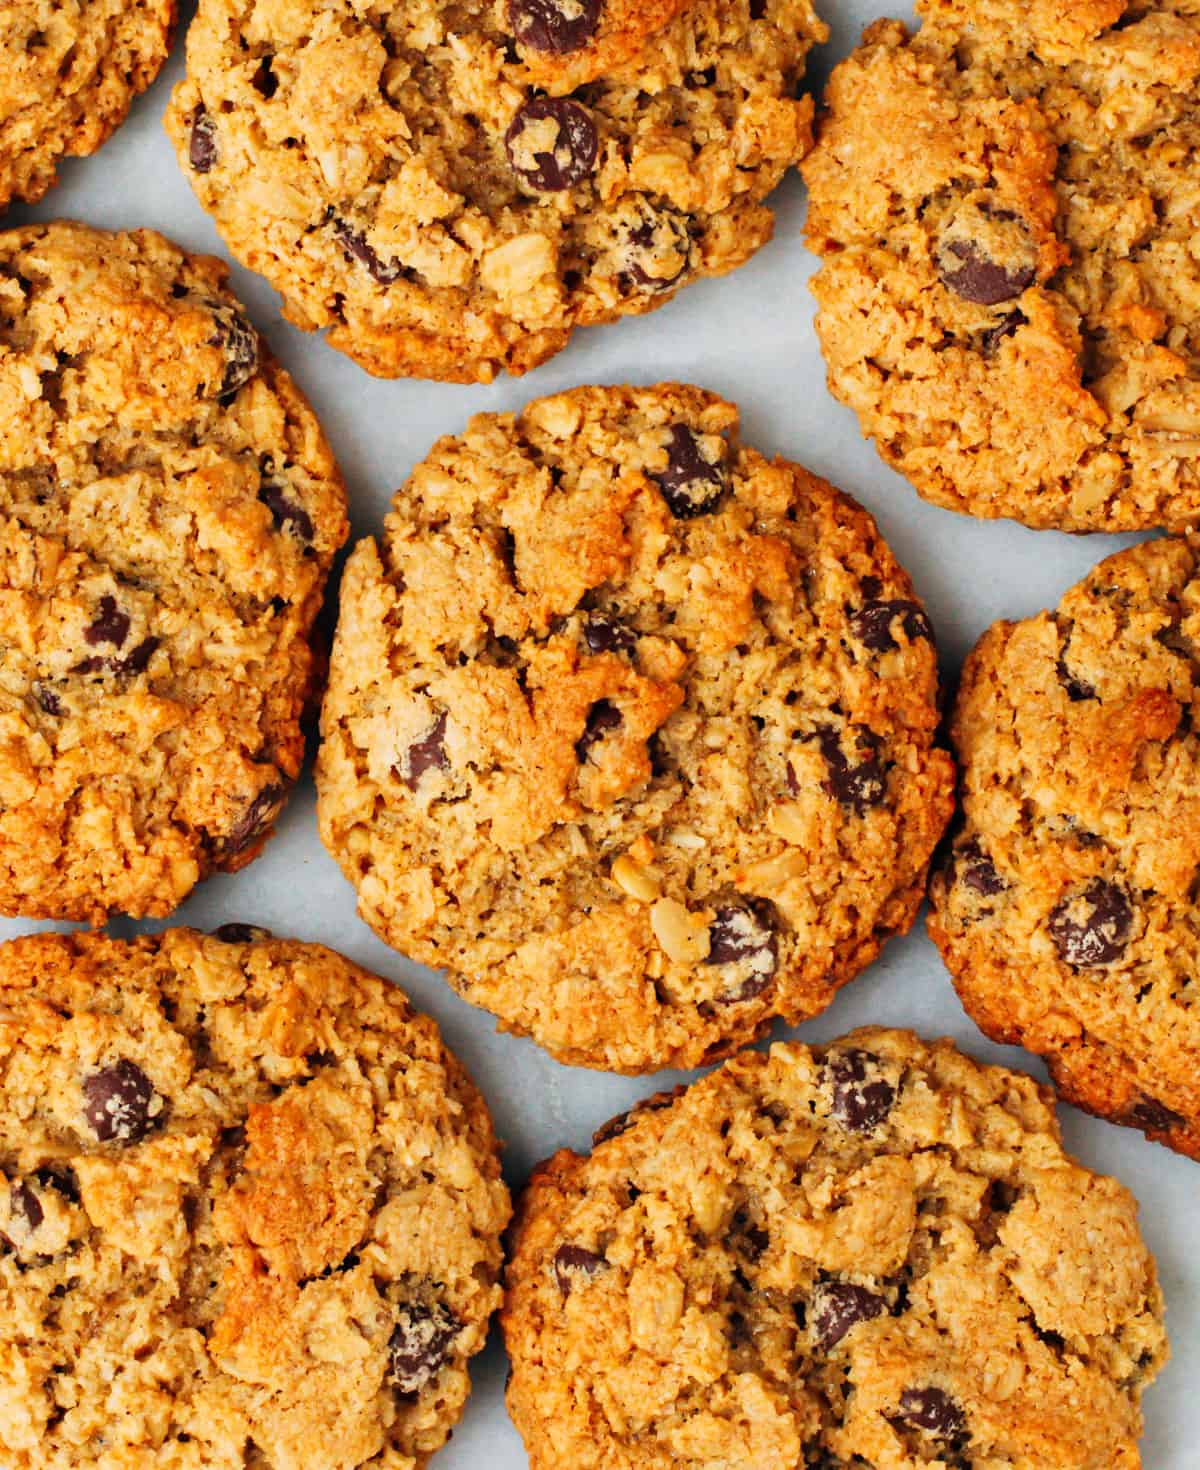 Almond Flour Oatmeal Cookies stacked on a white marble board photographed from above